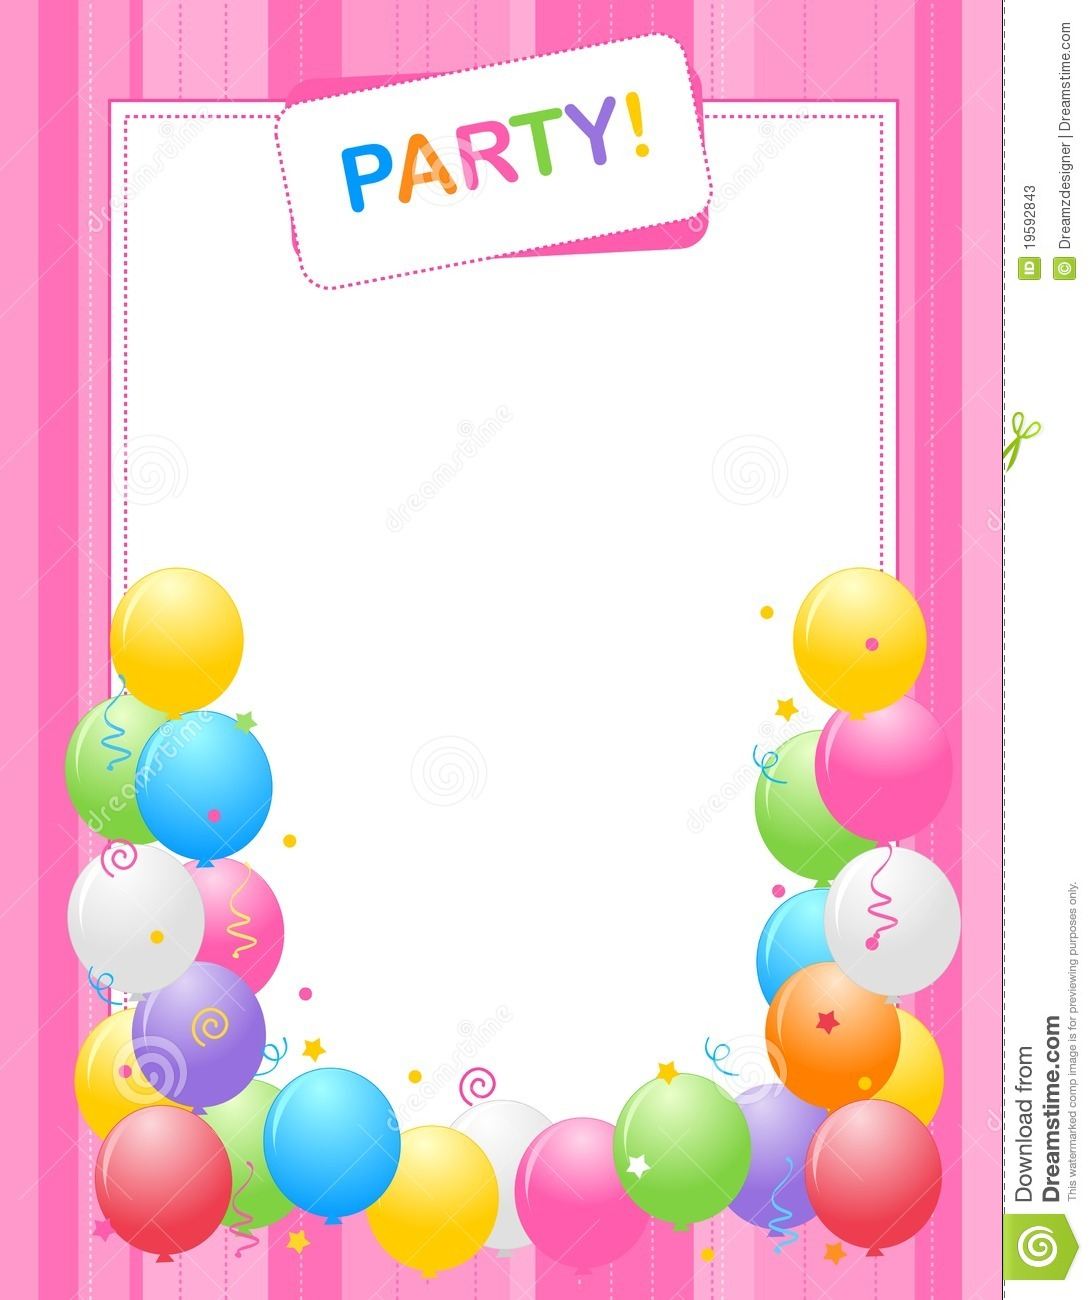 Colorful Balloons Border Frame Illustration For Birthday Cards And Party Invitations Backgrounds